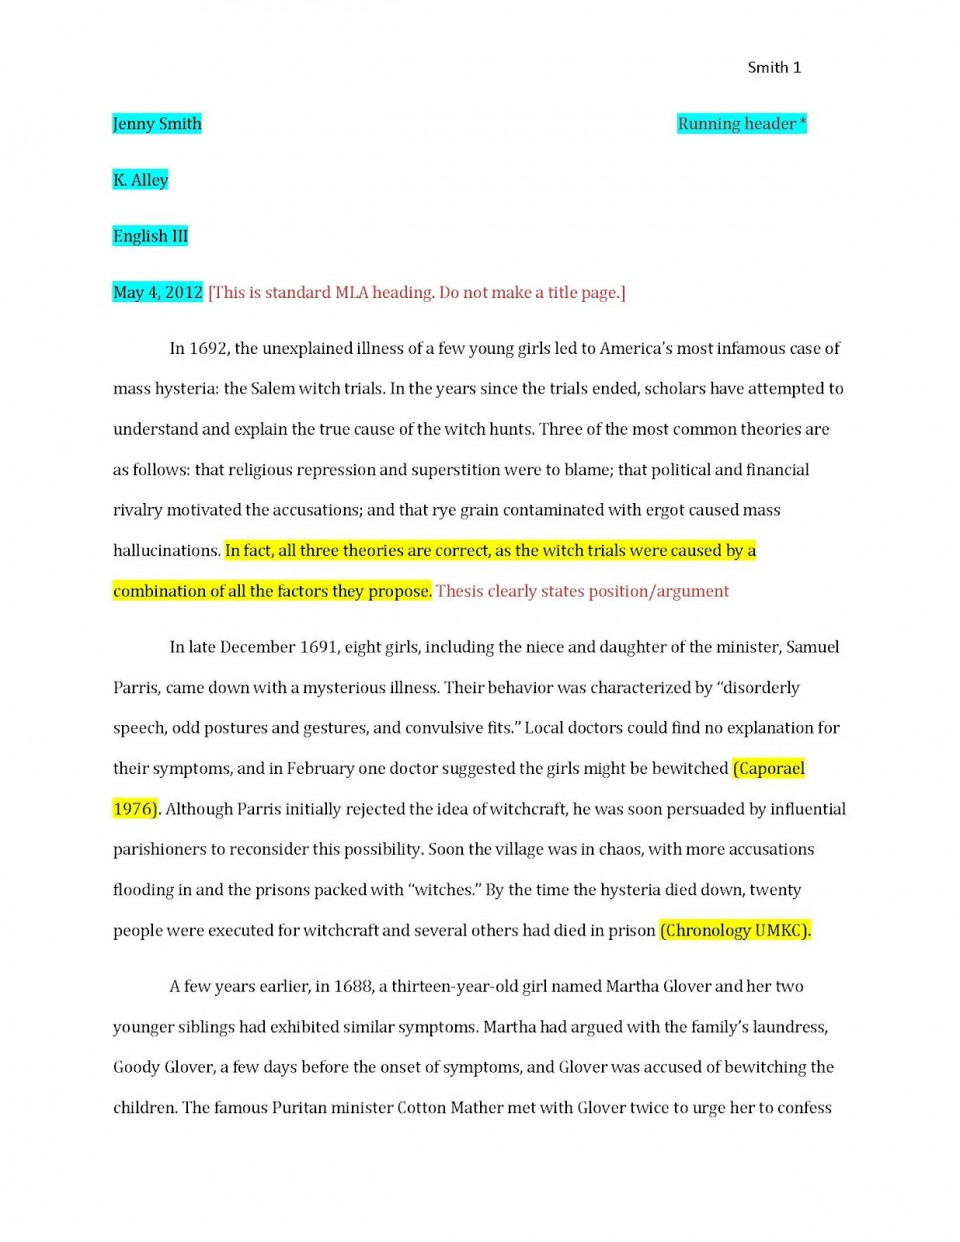 023 Chicago Style In Text Citation Sample Paper Examplepaper Page 1 Wondrous 960